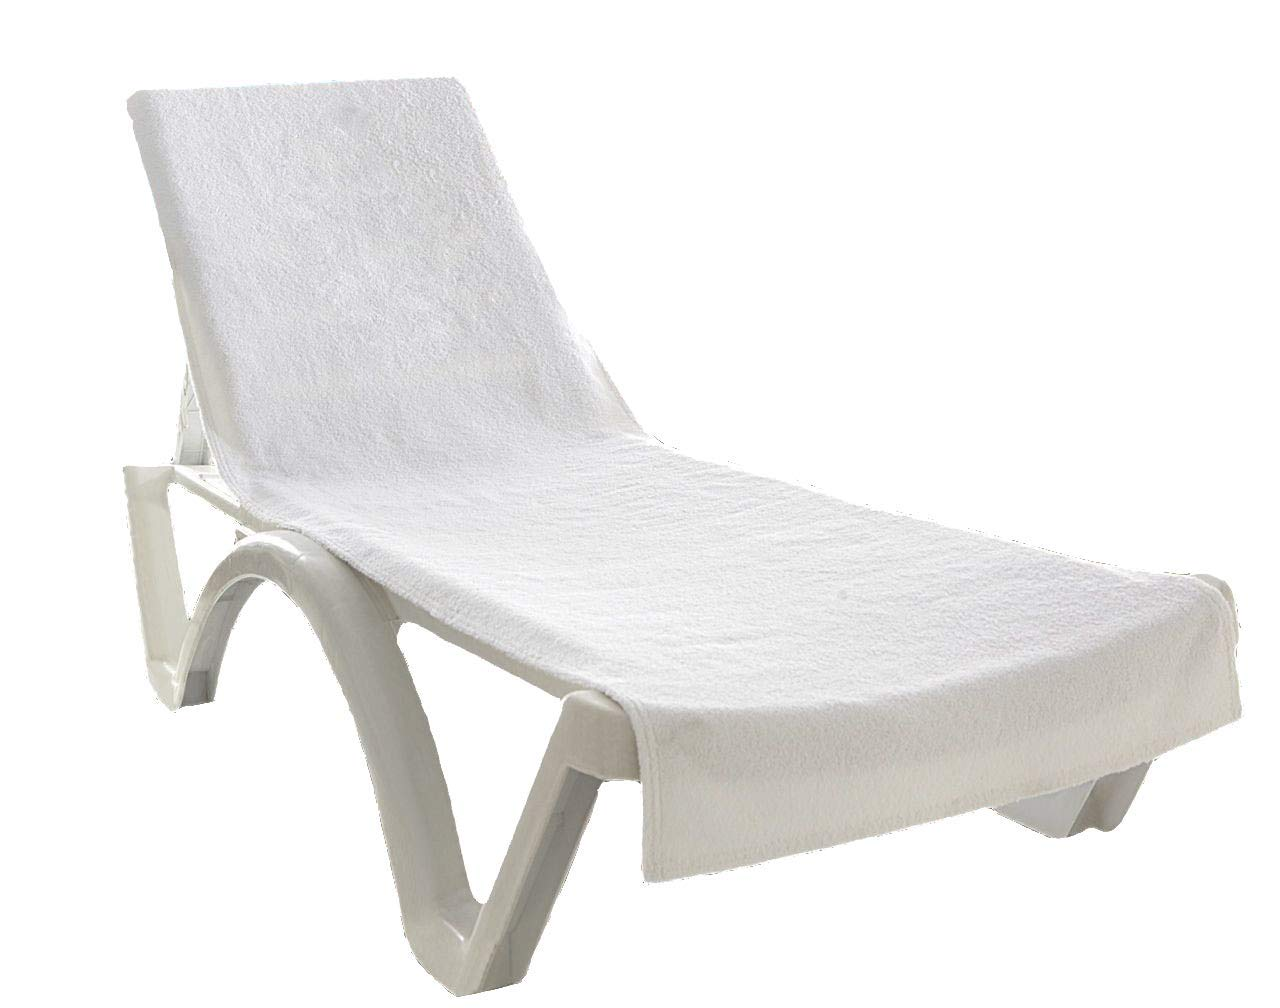 Amazon com globaltex fine linens 100 turkish cotton chaise lounge chair cotton towel cover with flap 32 x 87 white garden outdoor